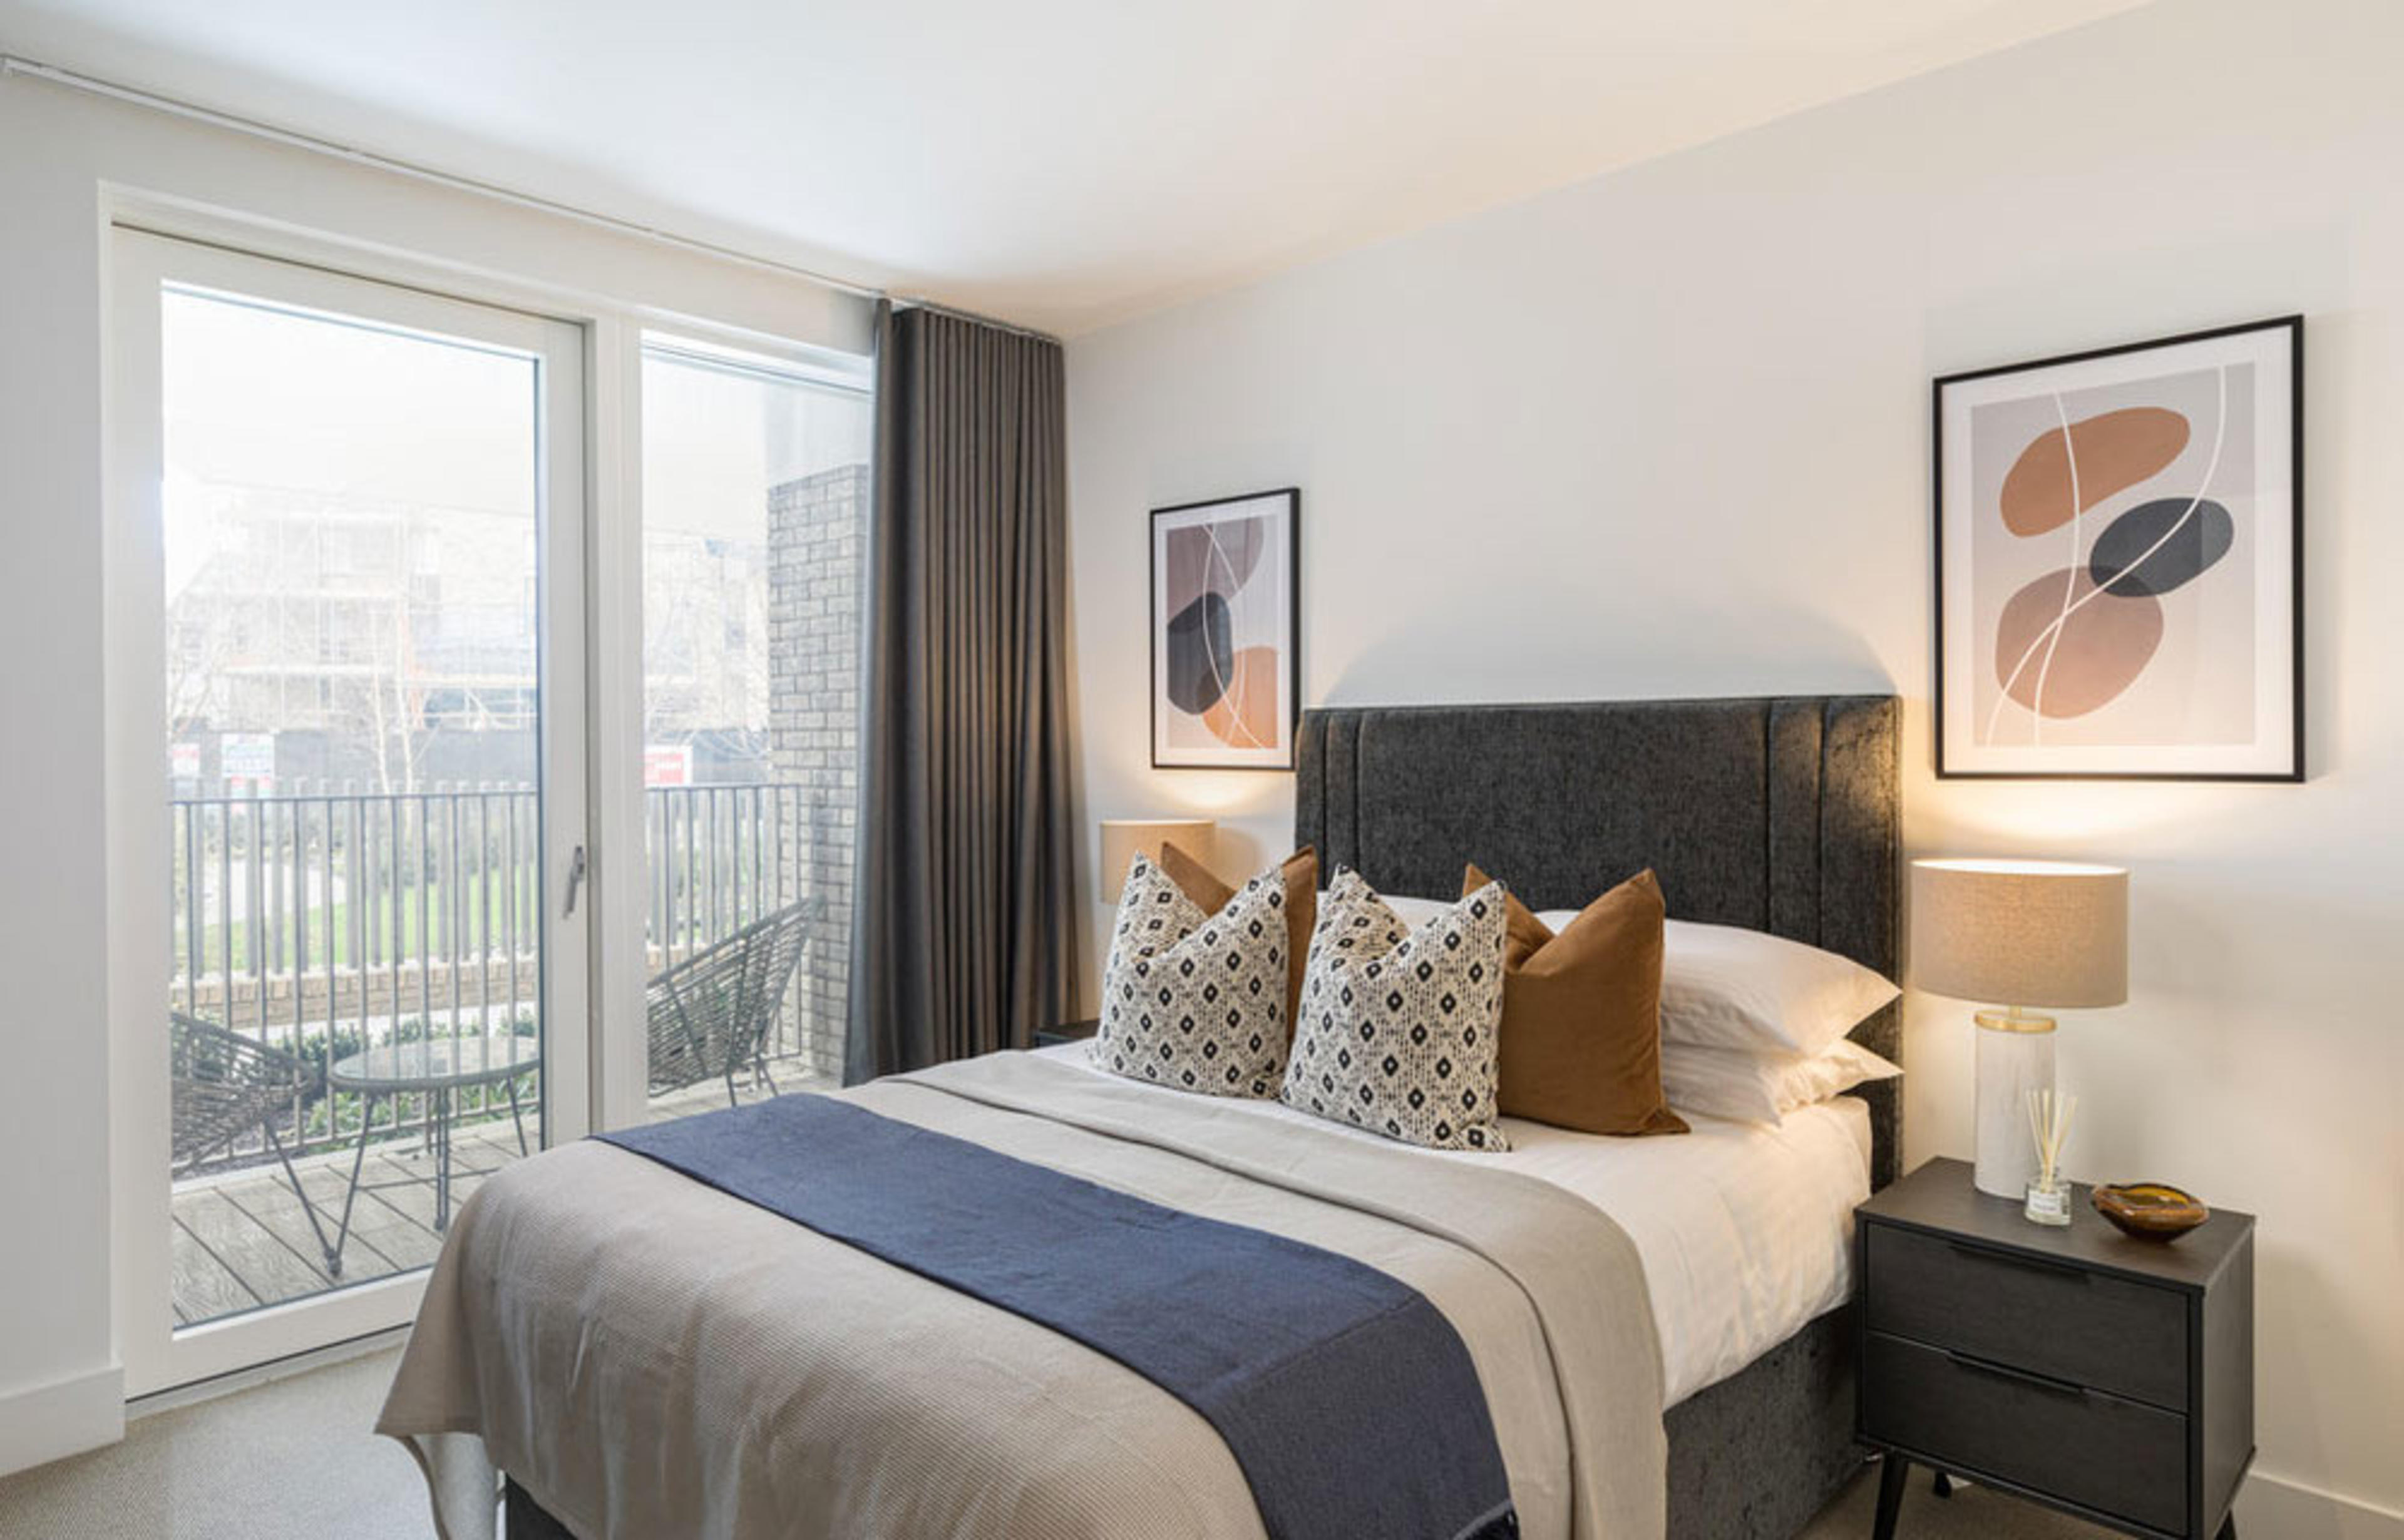 Featured 1 bedroom apartment at Anthology Wembley Parade  - view of bedroom with balcony access